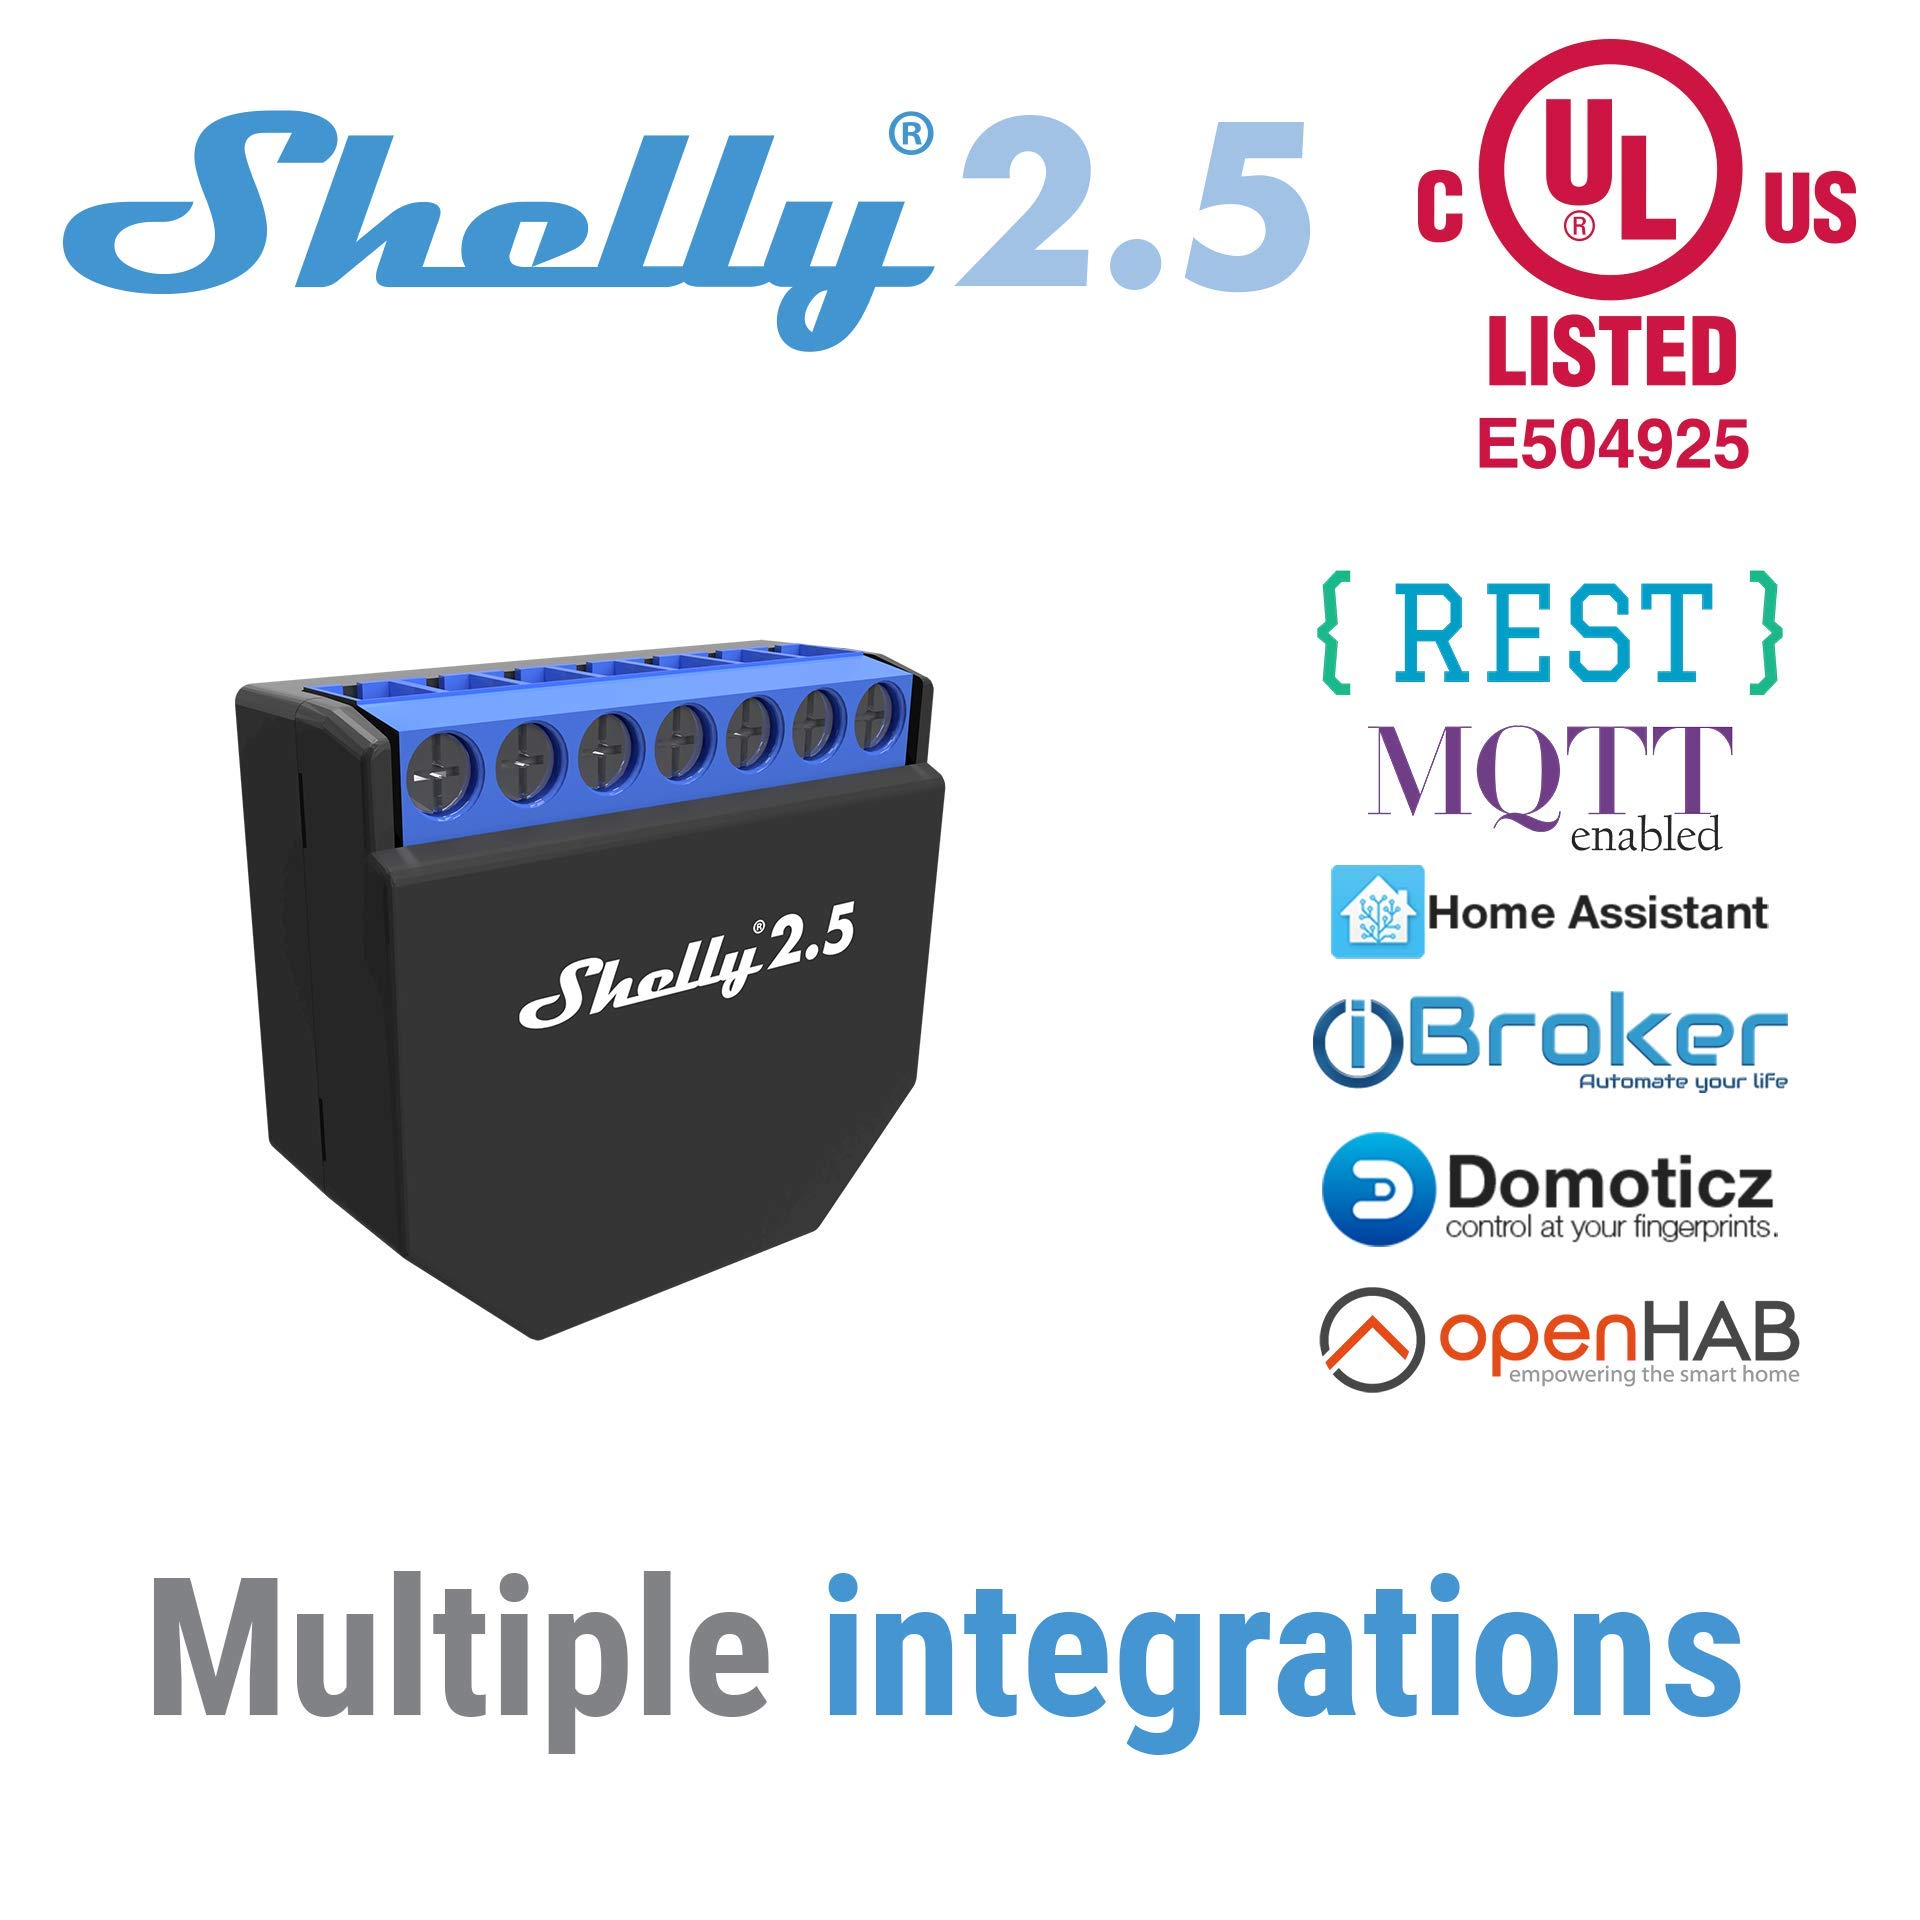 Shelly 2.5 Double Relay Switch and Roller Shutter WiFi Open Source Wireless Home Automation Dual Power Metering iOS Android Application (1 Pack) +UL Certificate